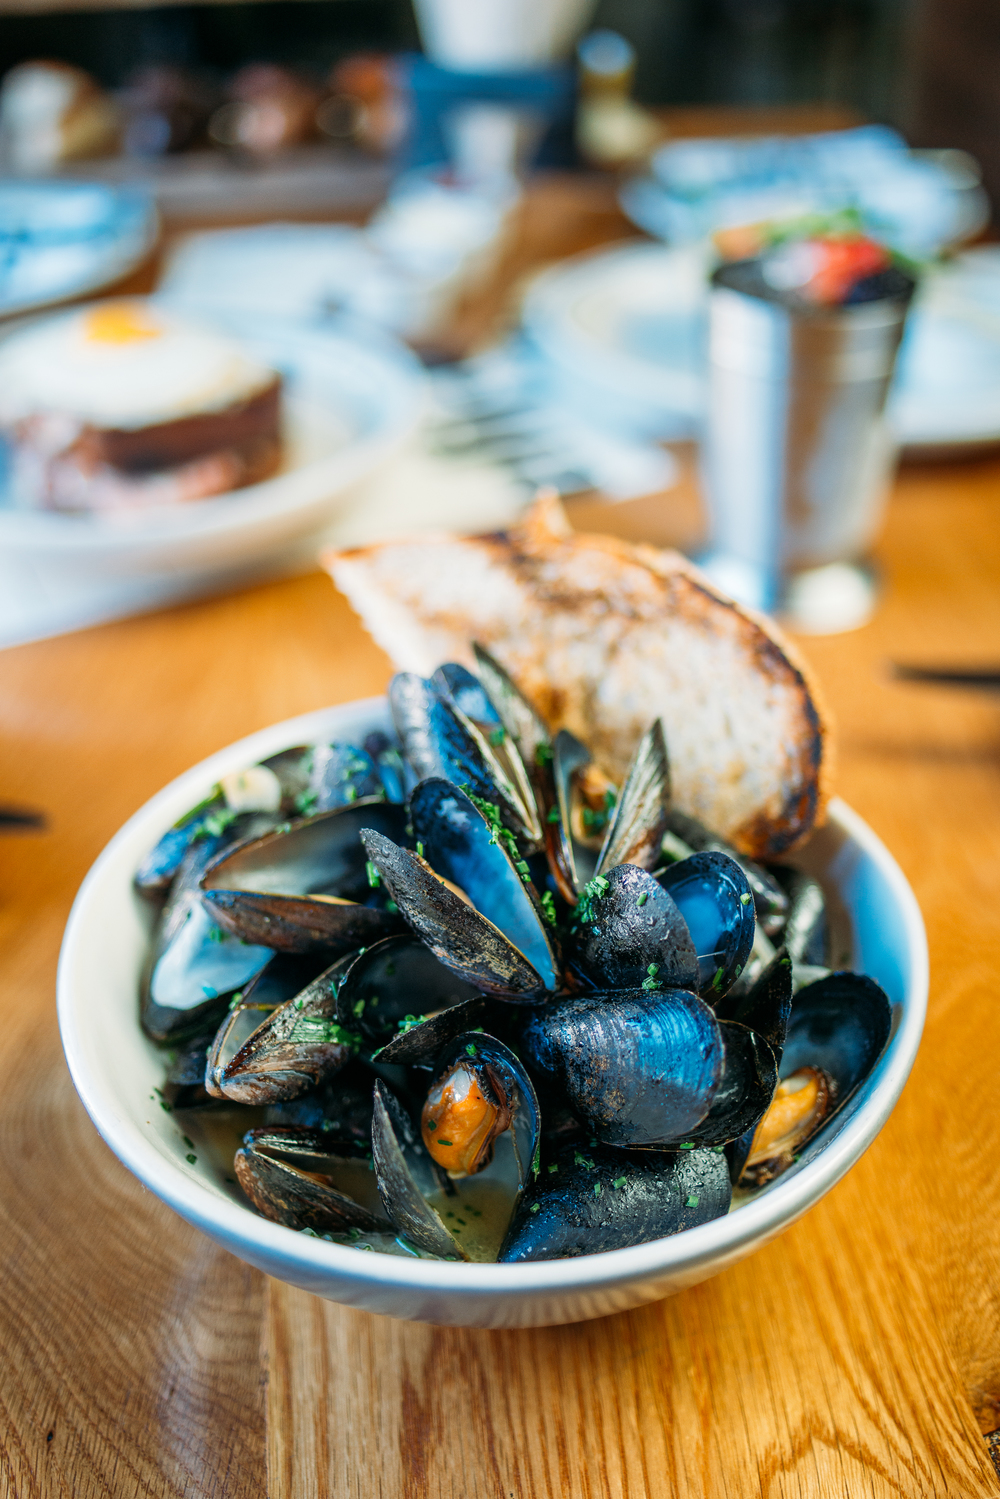 Steamed mussels, whitbier, shallots, garlic.